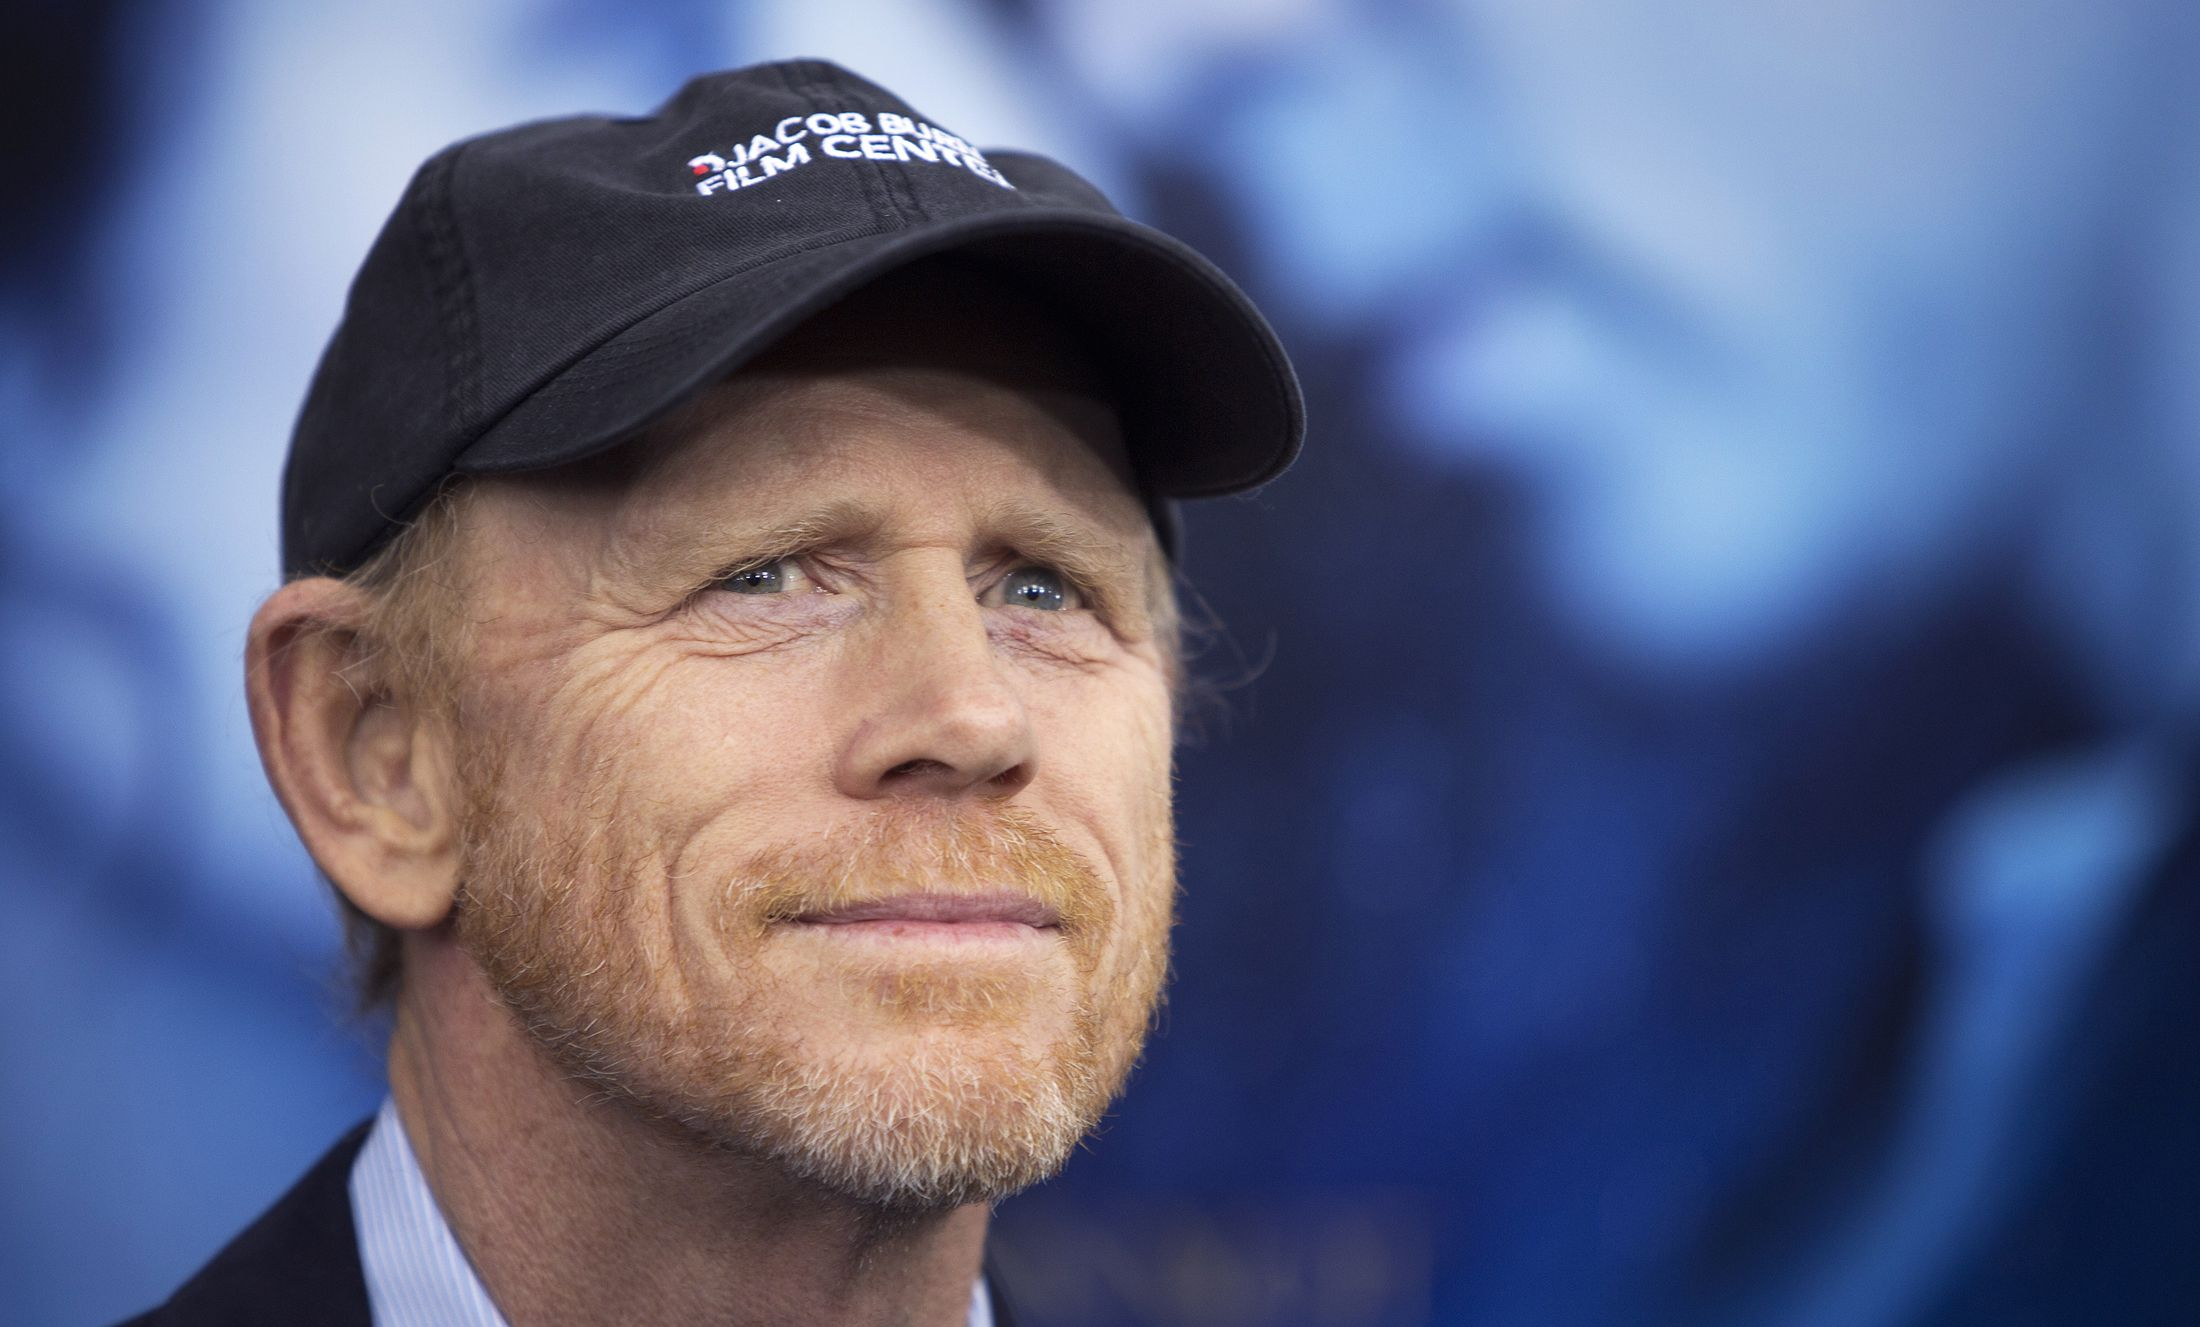 Ron Howard On Lsquo Mars Rsquo Series And Why He Won Rsquo T Go But You